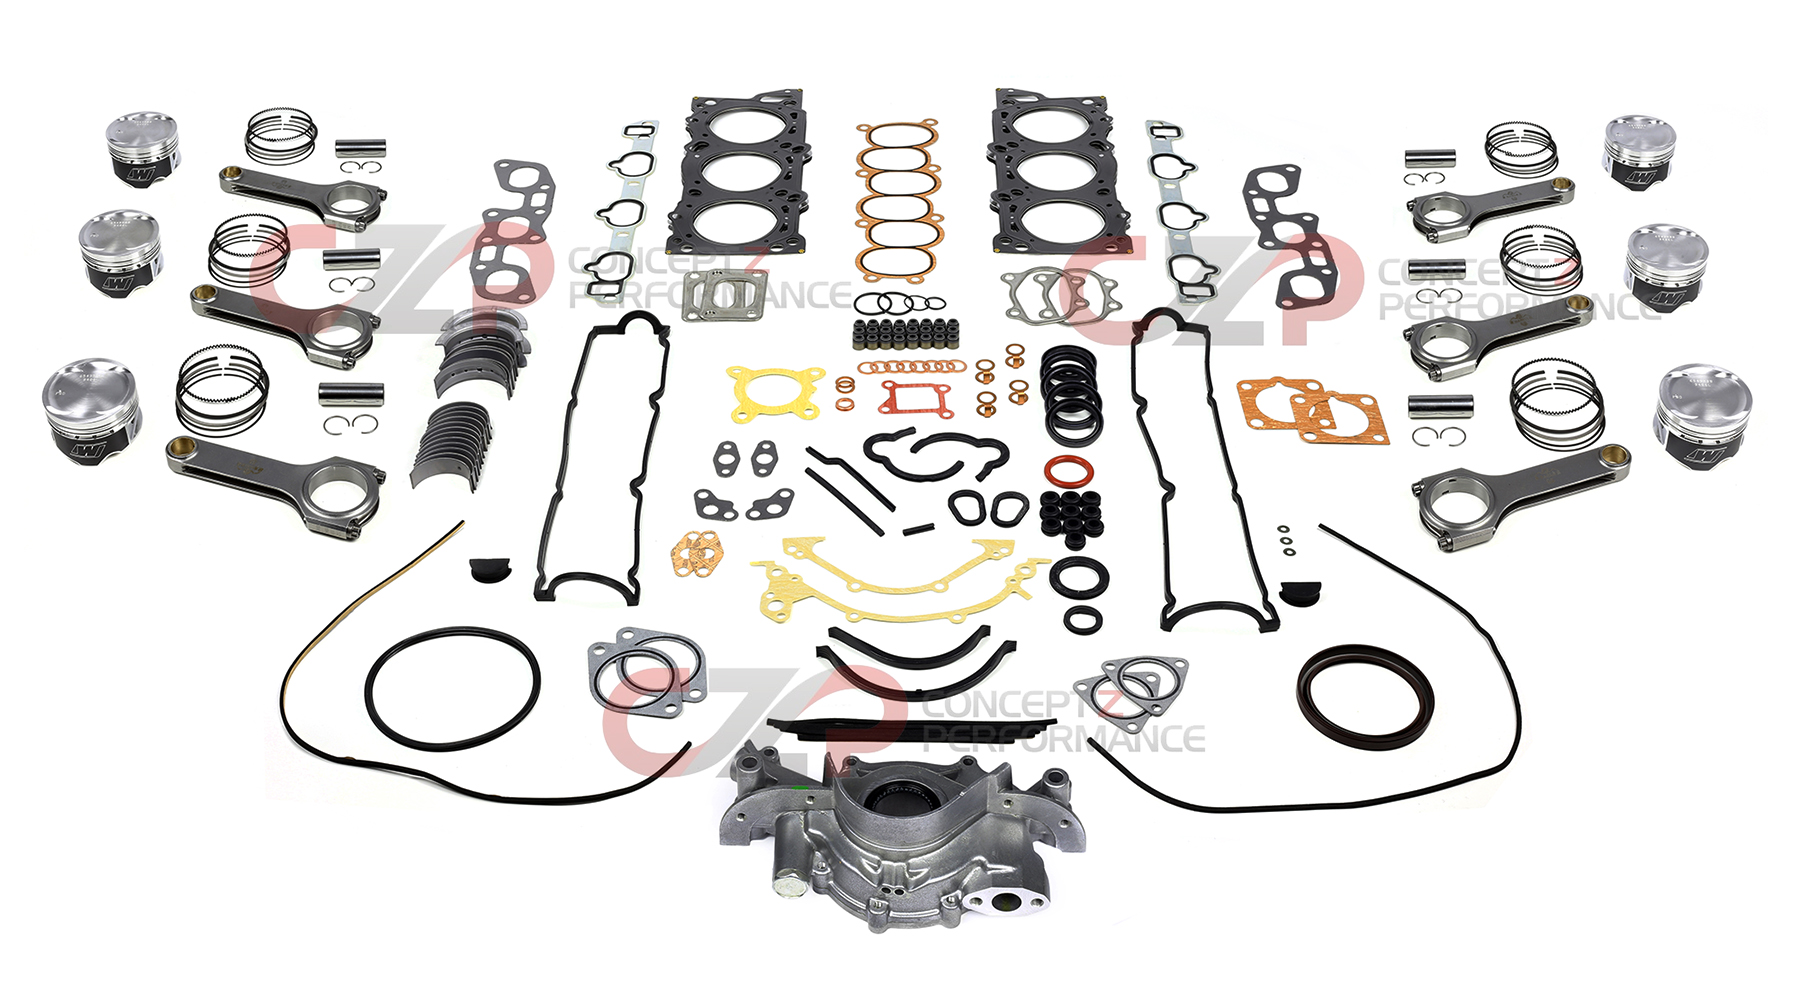 Wiseco Piston & Eagle Connecting Rod, Complete Engine Rebuild Kit Package - Nissan 300ZX Z32